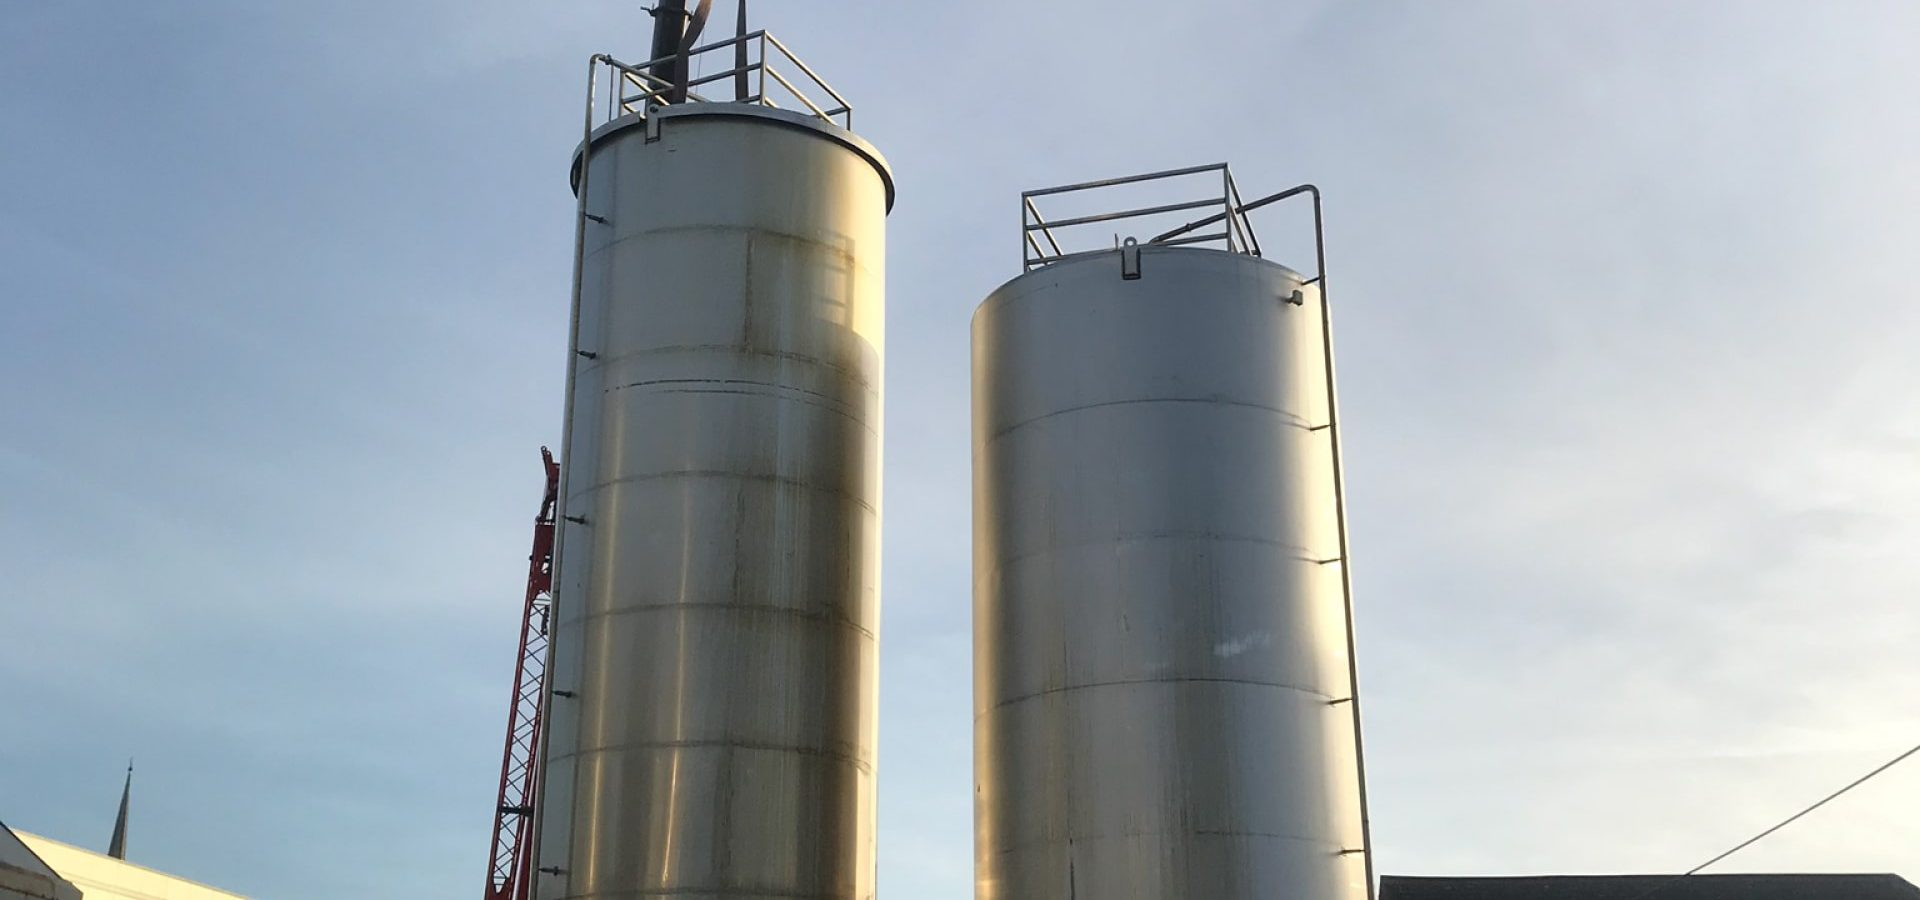 Vessel Refurbishment / Repairs - on site silo refurb with new base sections fitted